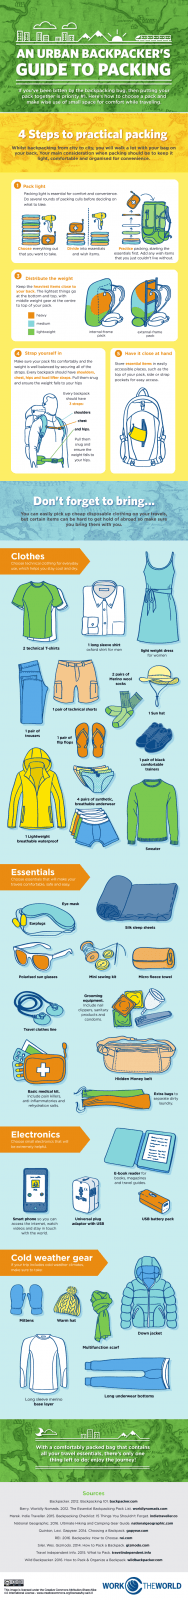 A-Backpackers-Guide-to-Packing-DV4